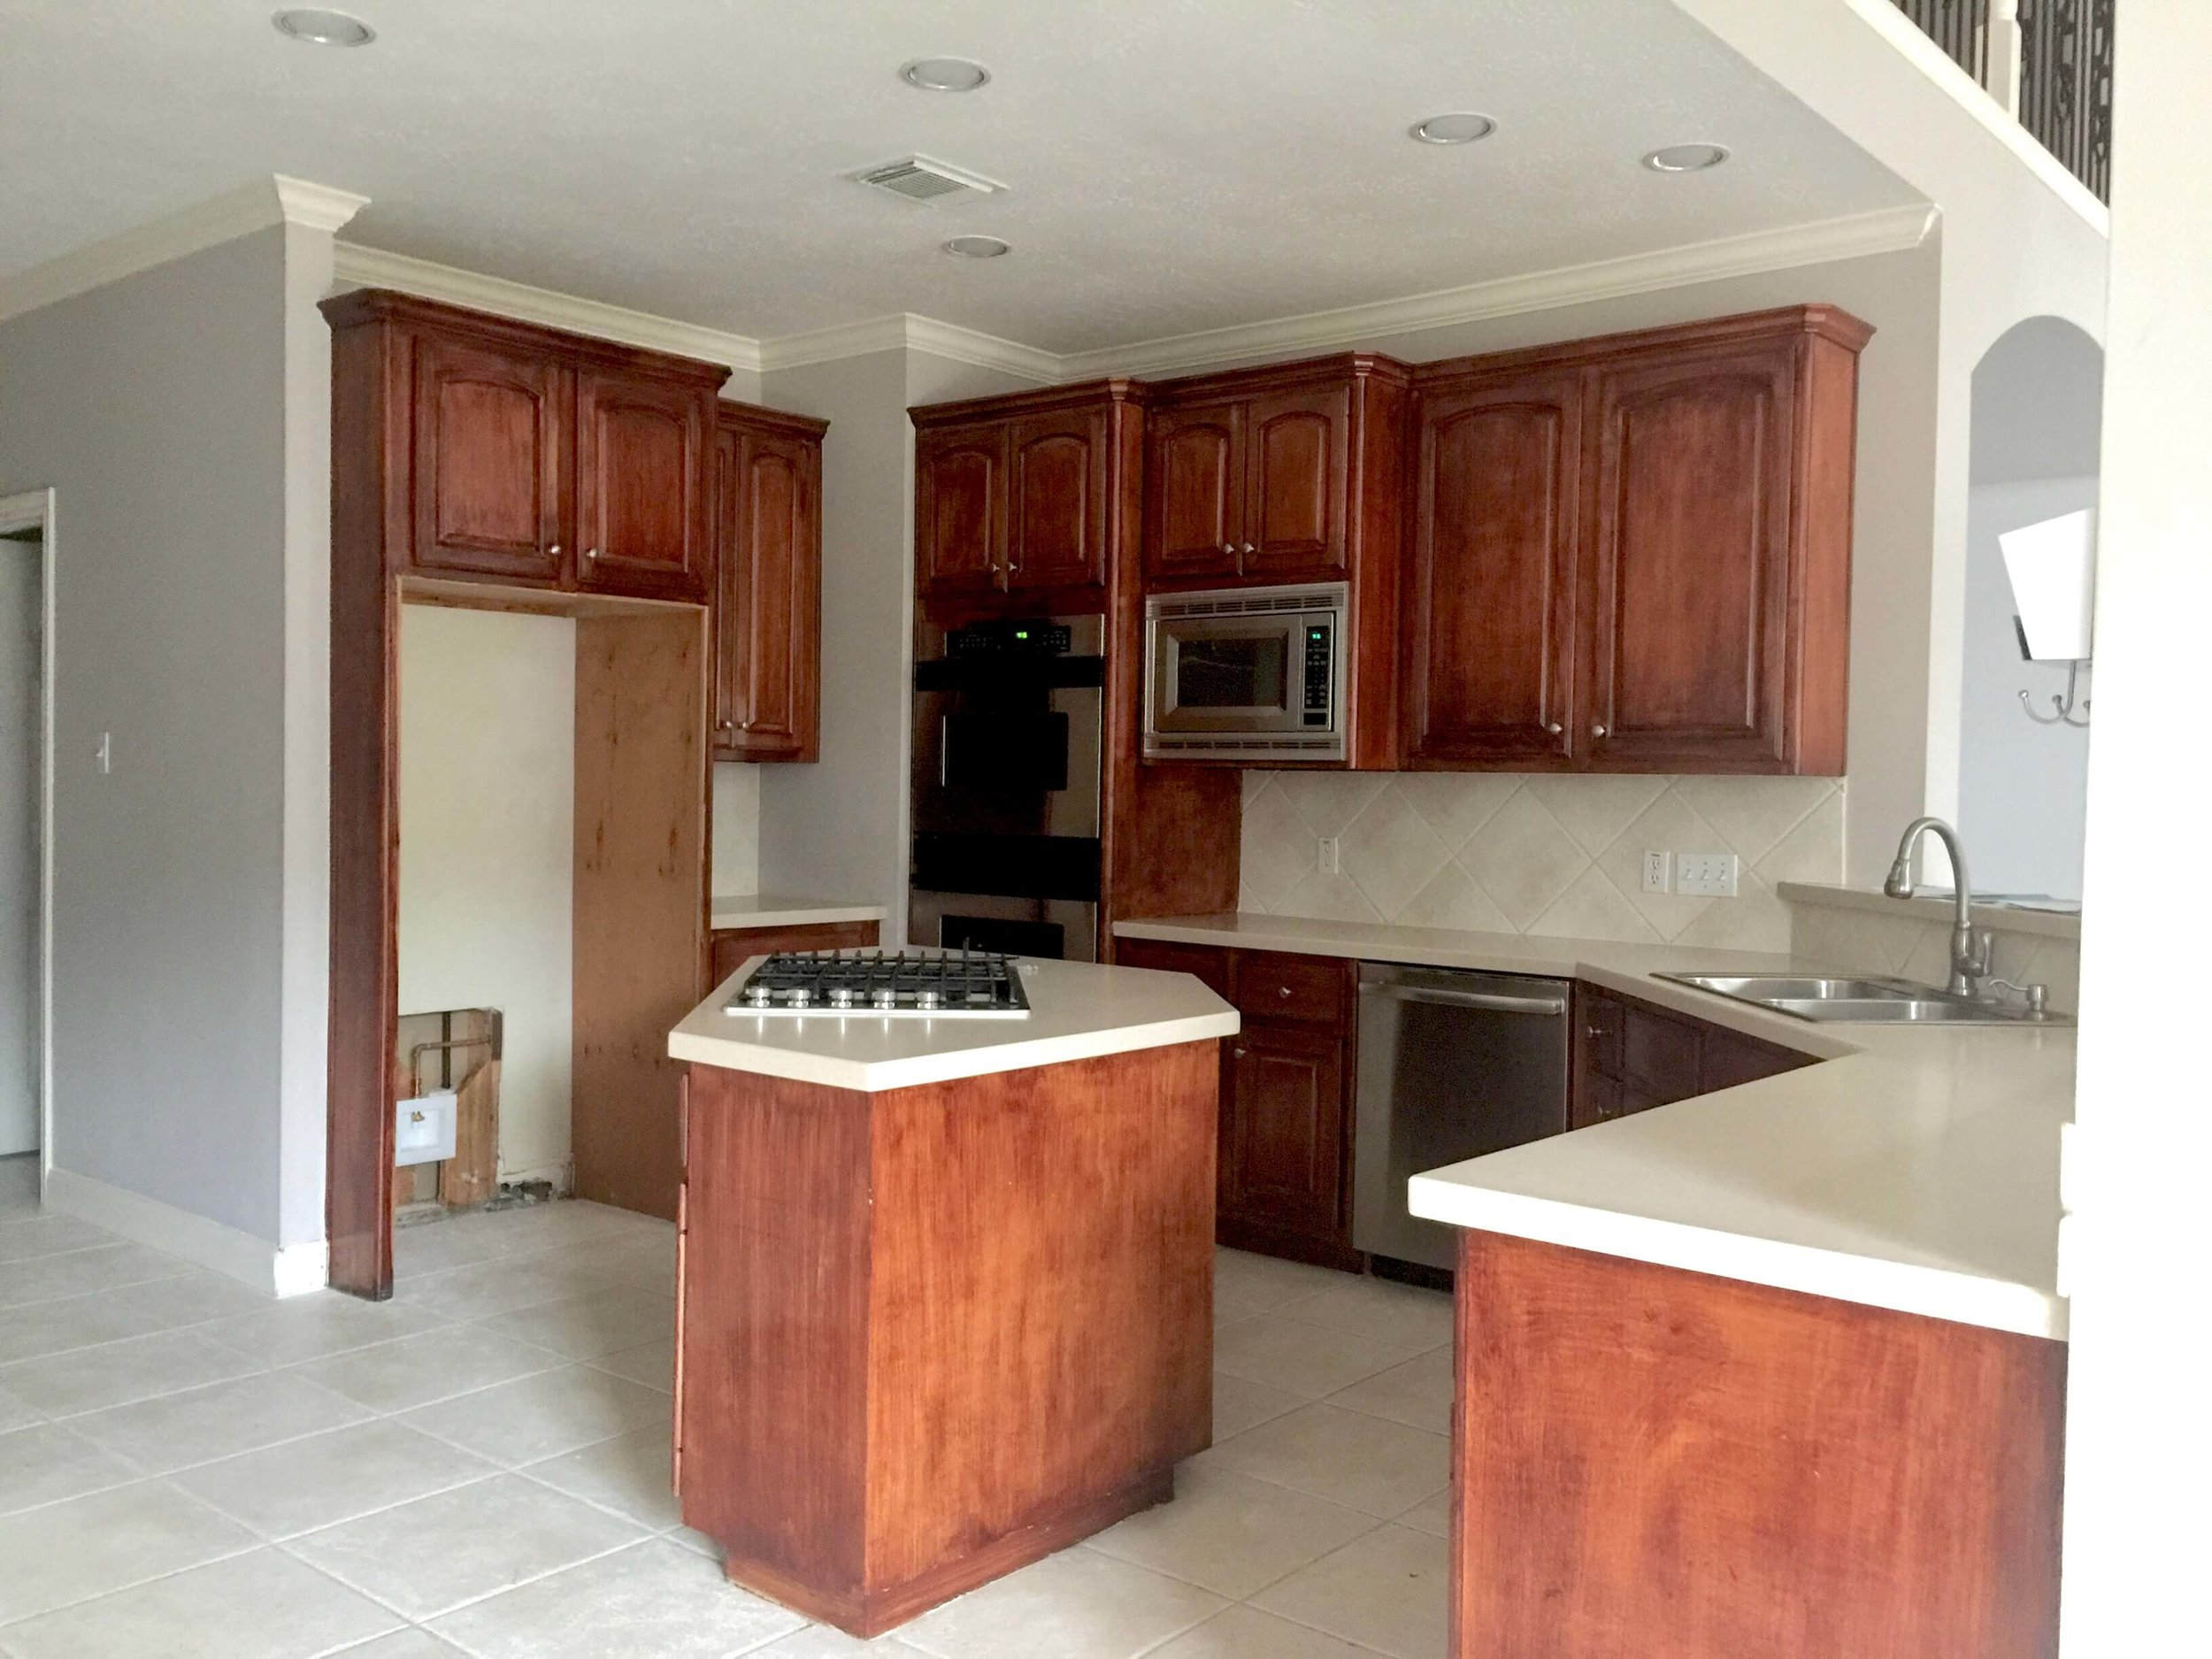 Angled Kitchen Island With Seating